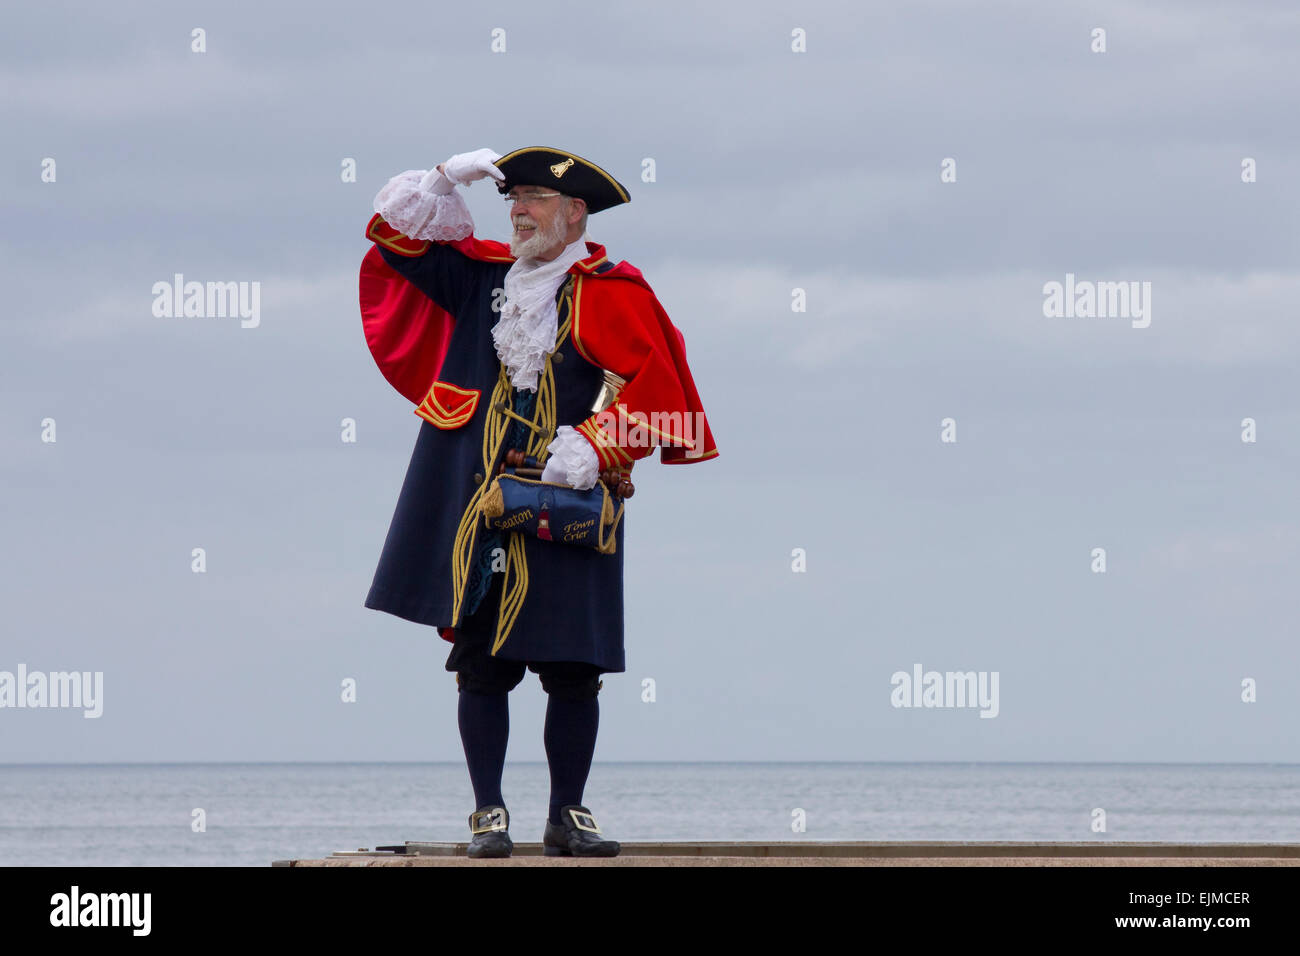 Town Crier. Town crier in traditional costume in Seaton, Devon, England, UK. - Stock Image